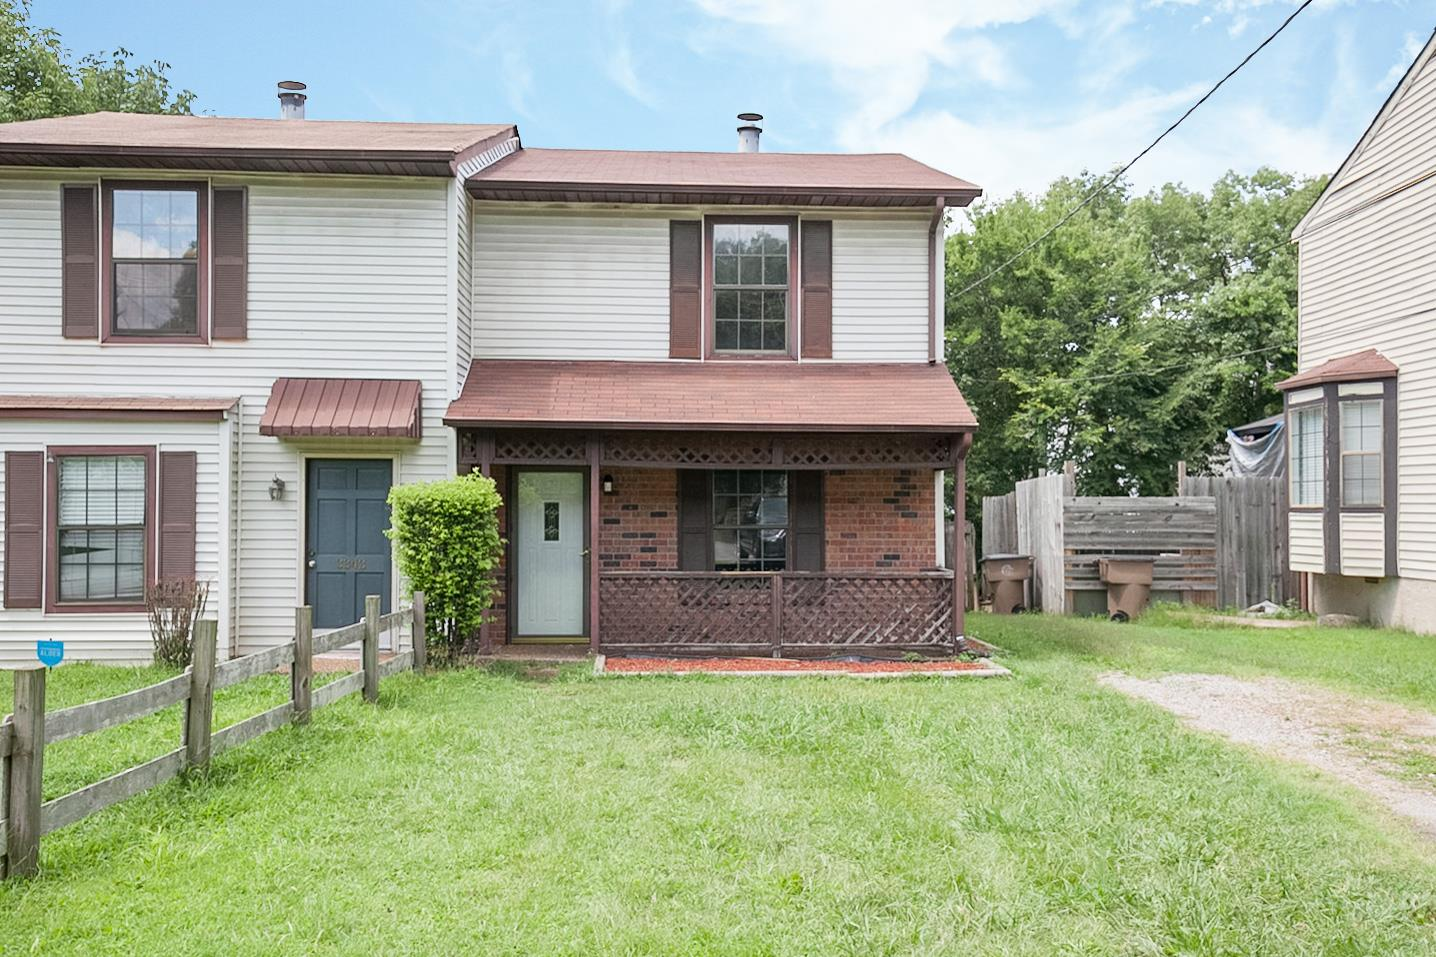 $155,000 - 2Br/2Ba -  for Sale in Lakeshore Woods, Antioch